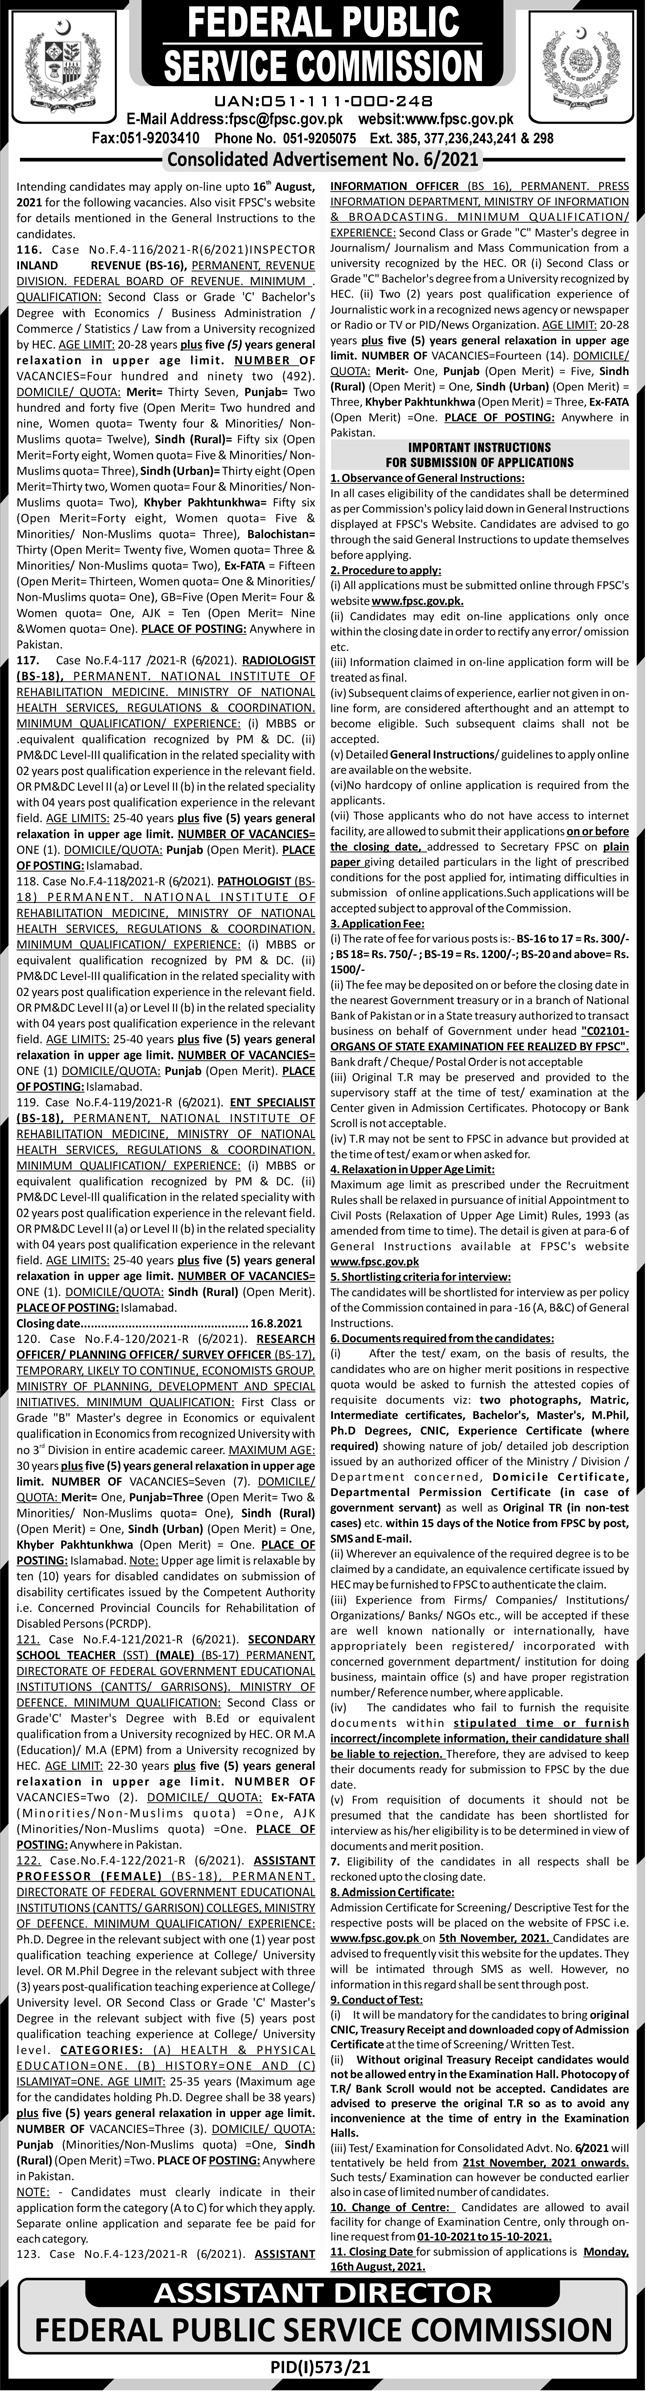 Federal Public Service Commission FPSC Jobs In Islamabad